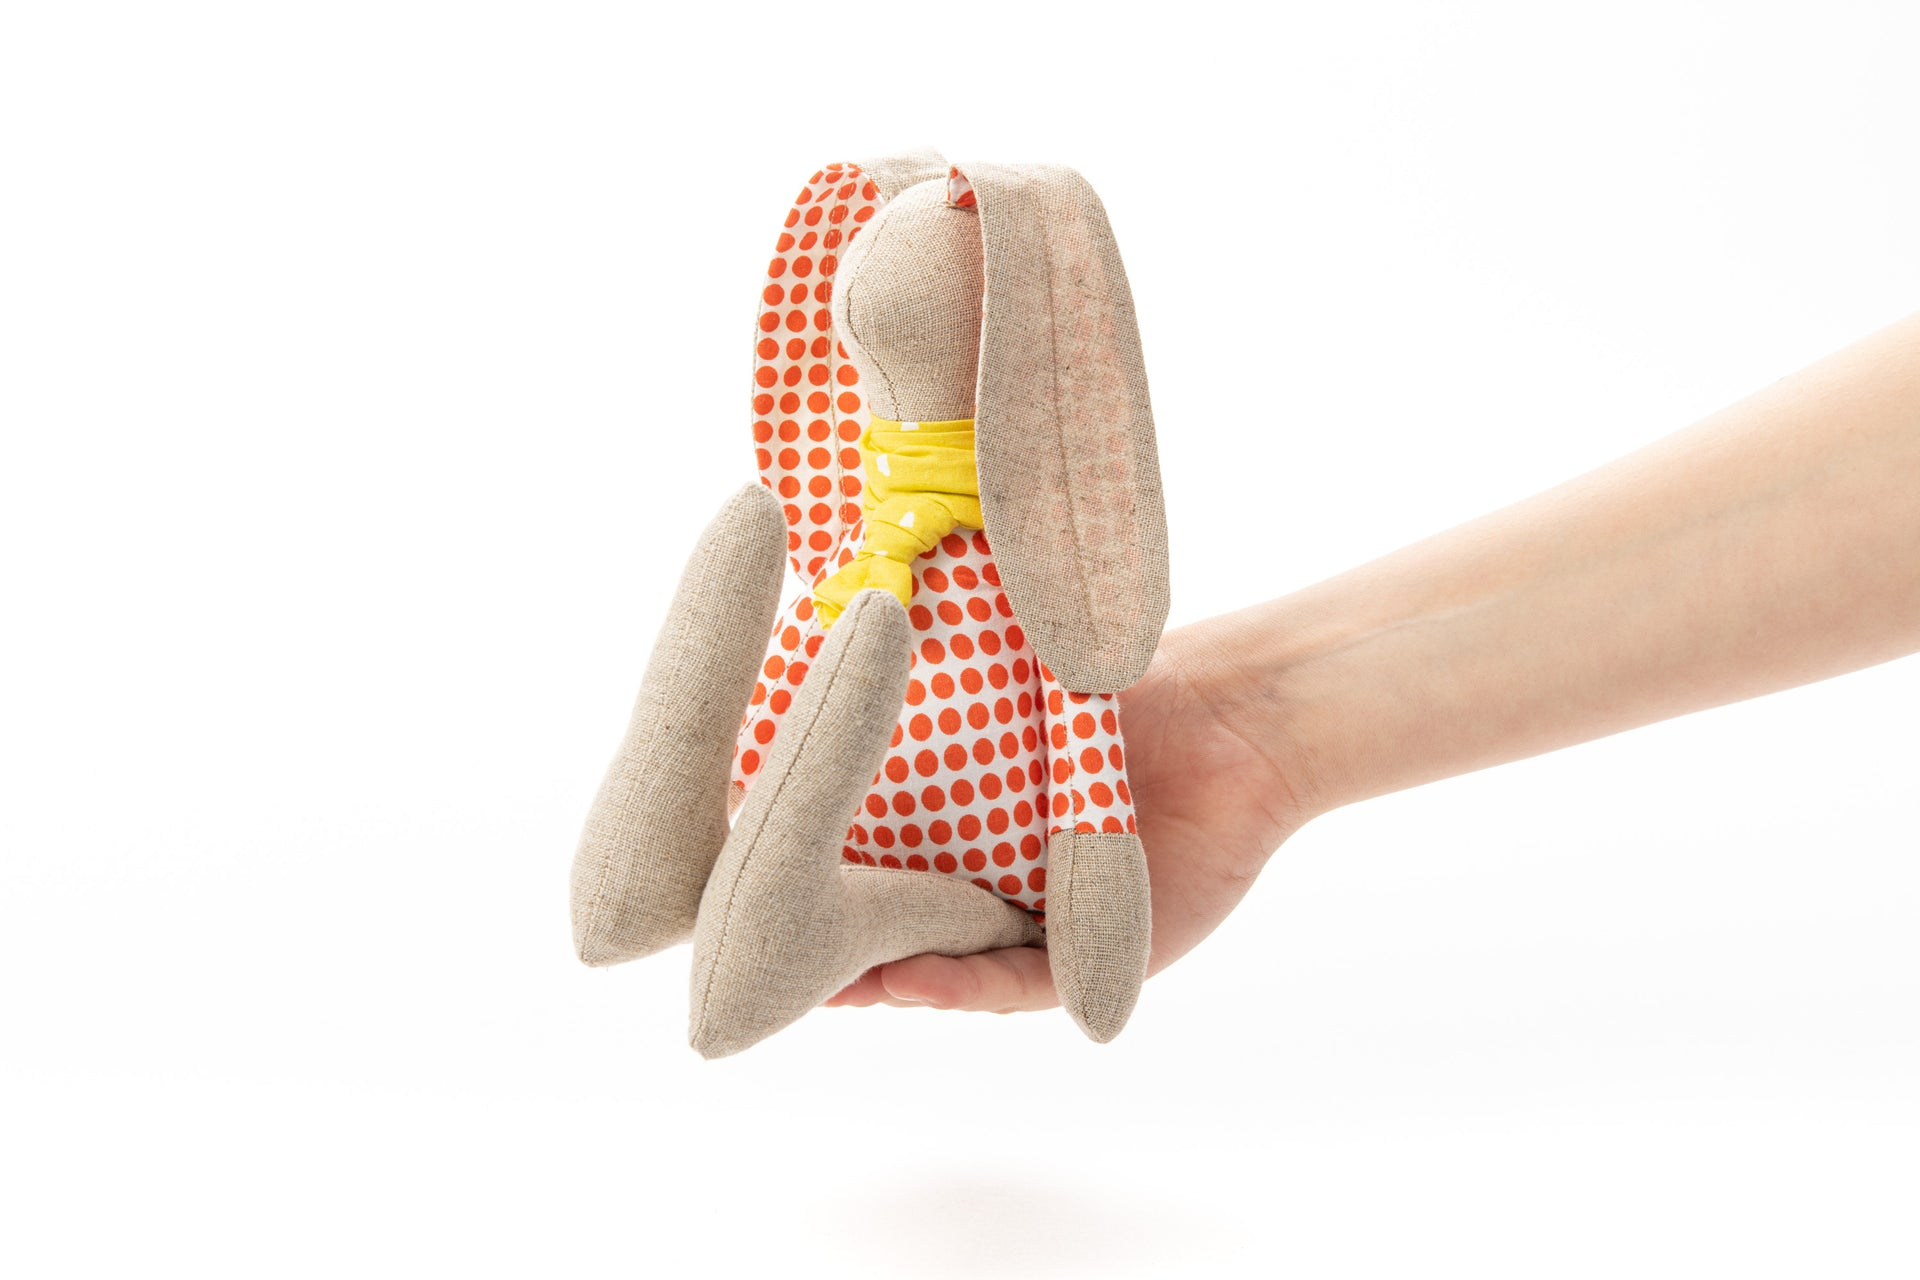 Handmade bunny, Baby room décor, Art doll, Rag doll, Textile doll, Rabbit doll, Doll toy, Stuffed animal, Handmade rabbit, Fabric doll, Hare